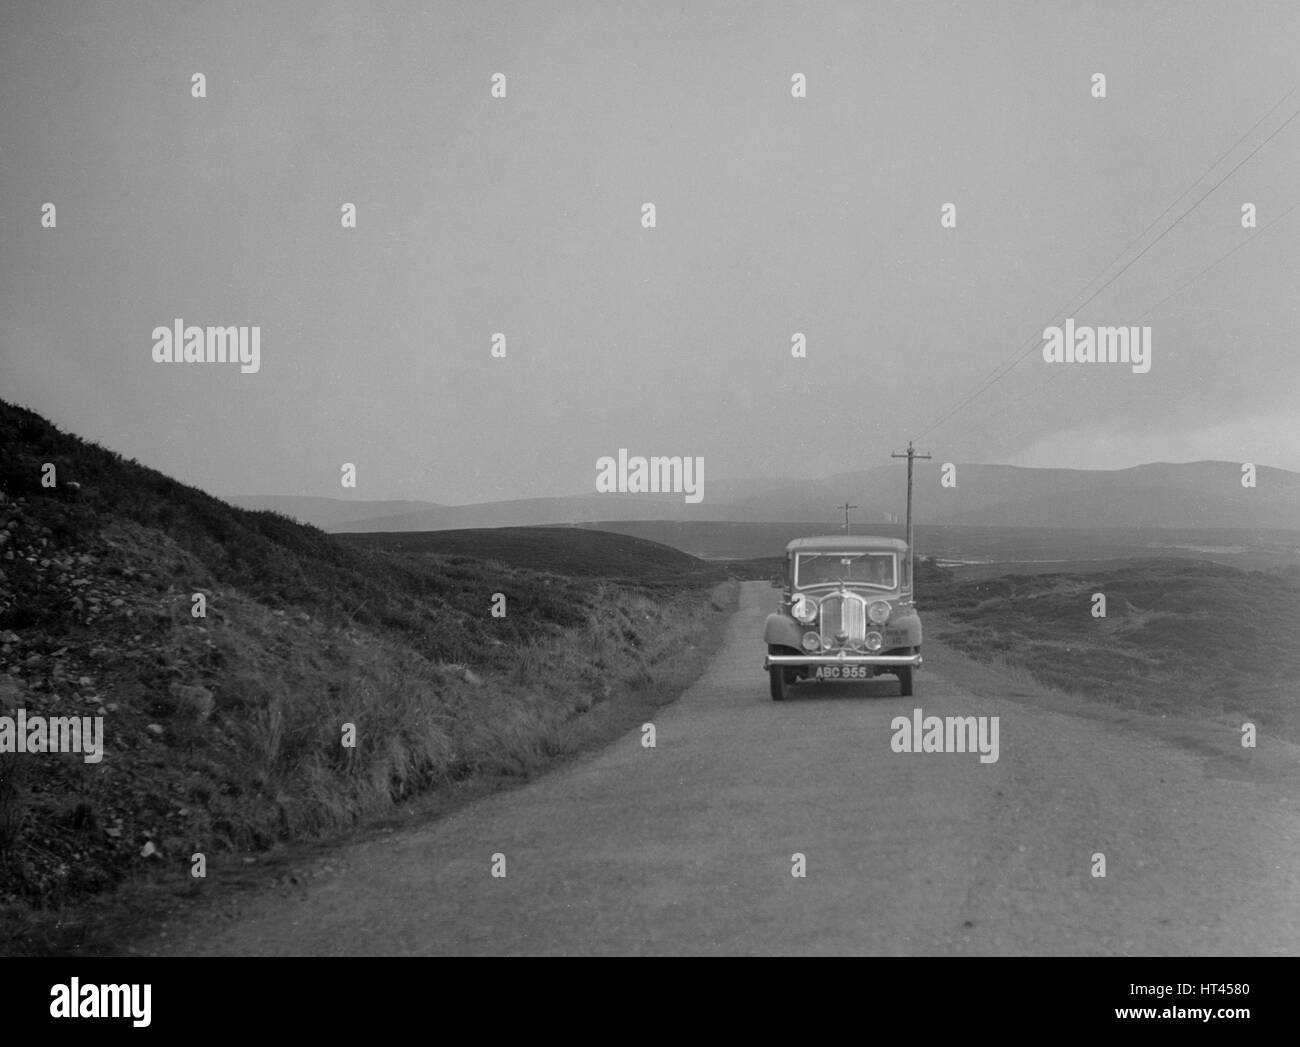 Rover of SJ Clutterbuck competing in the RSAC Scottish Rally, 1936. Artist: Bill Brunell. - Stock Image